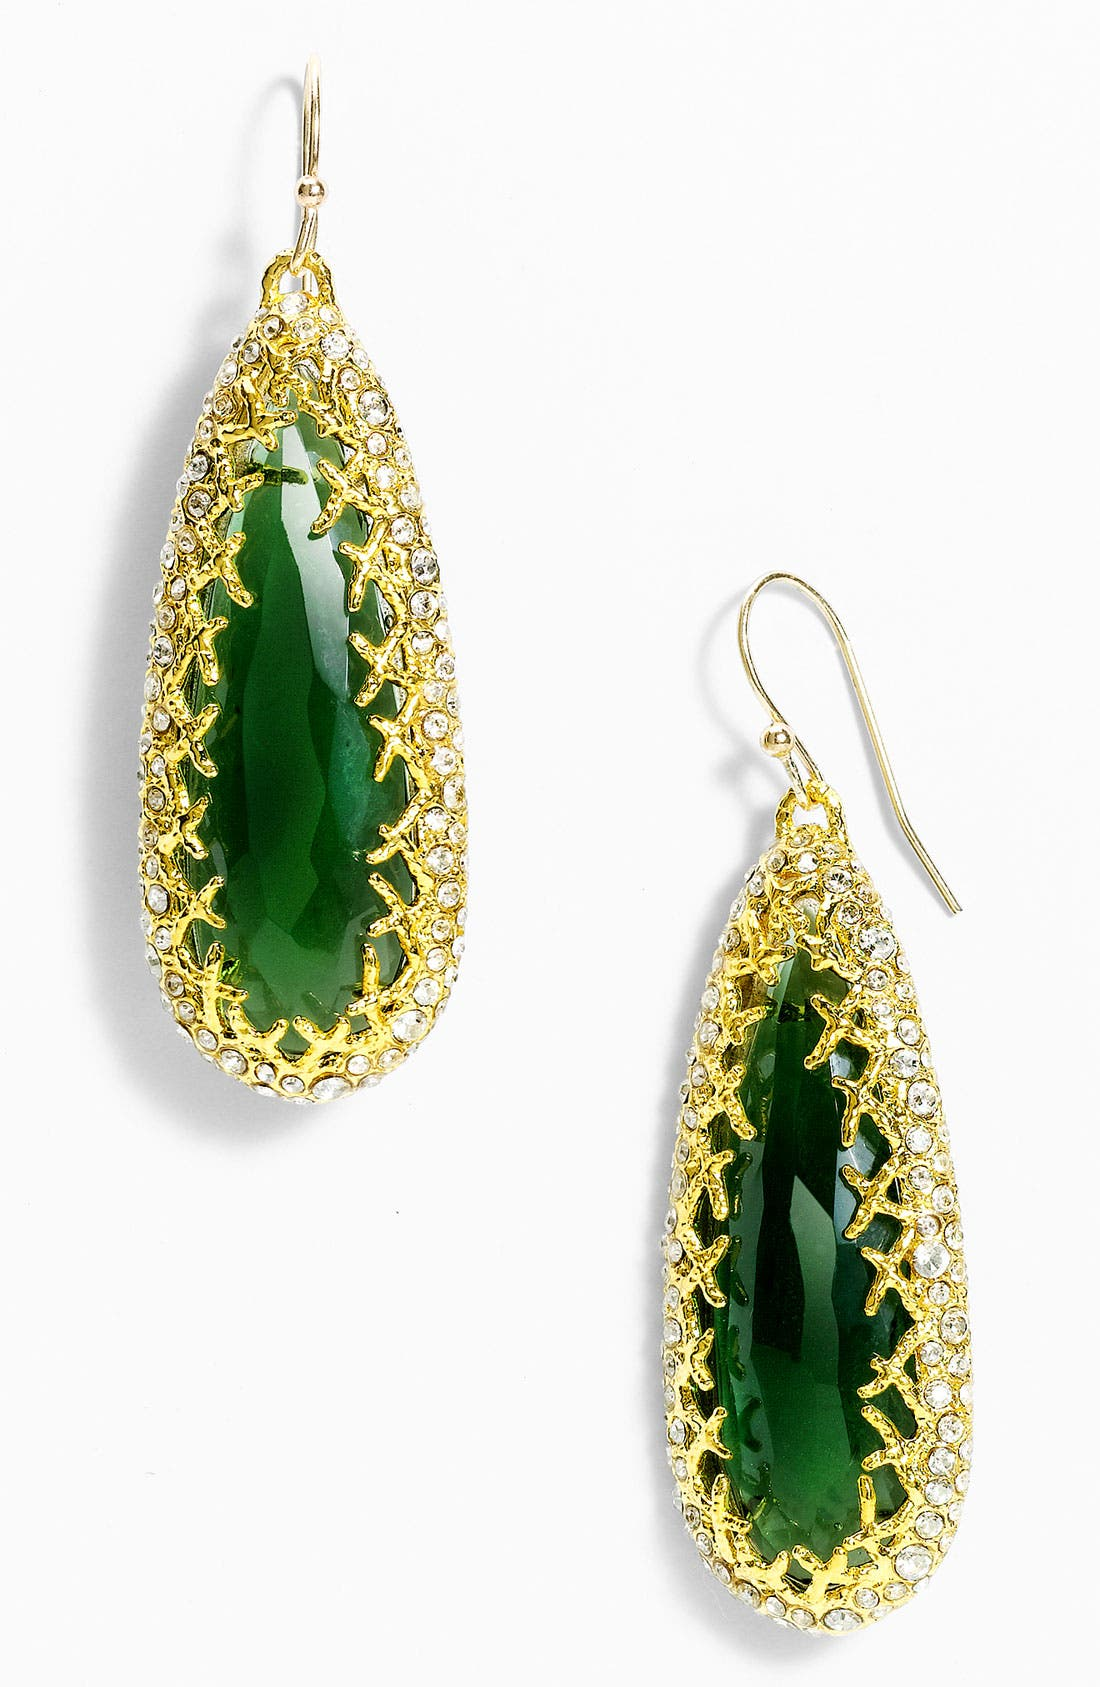 Alternate Image 1 Selected - Alexis Bittar 'Elements' Crown Set Teardrop Earrings (Nordstrom Exclusive)